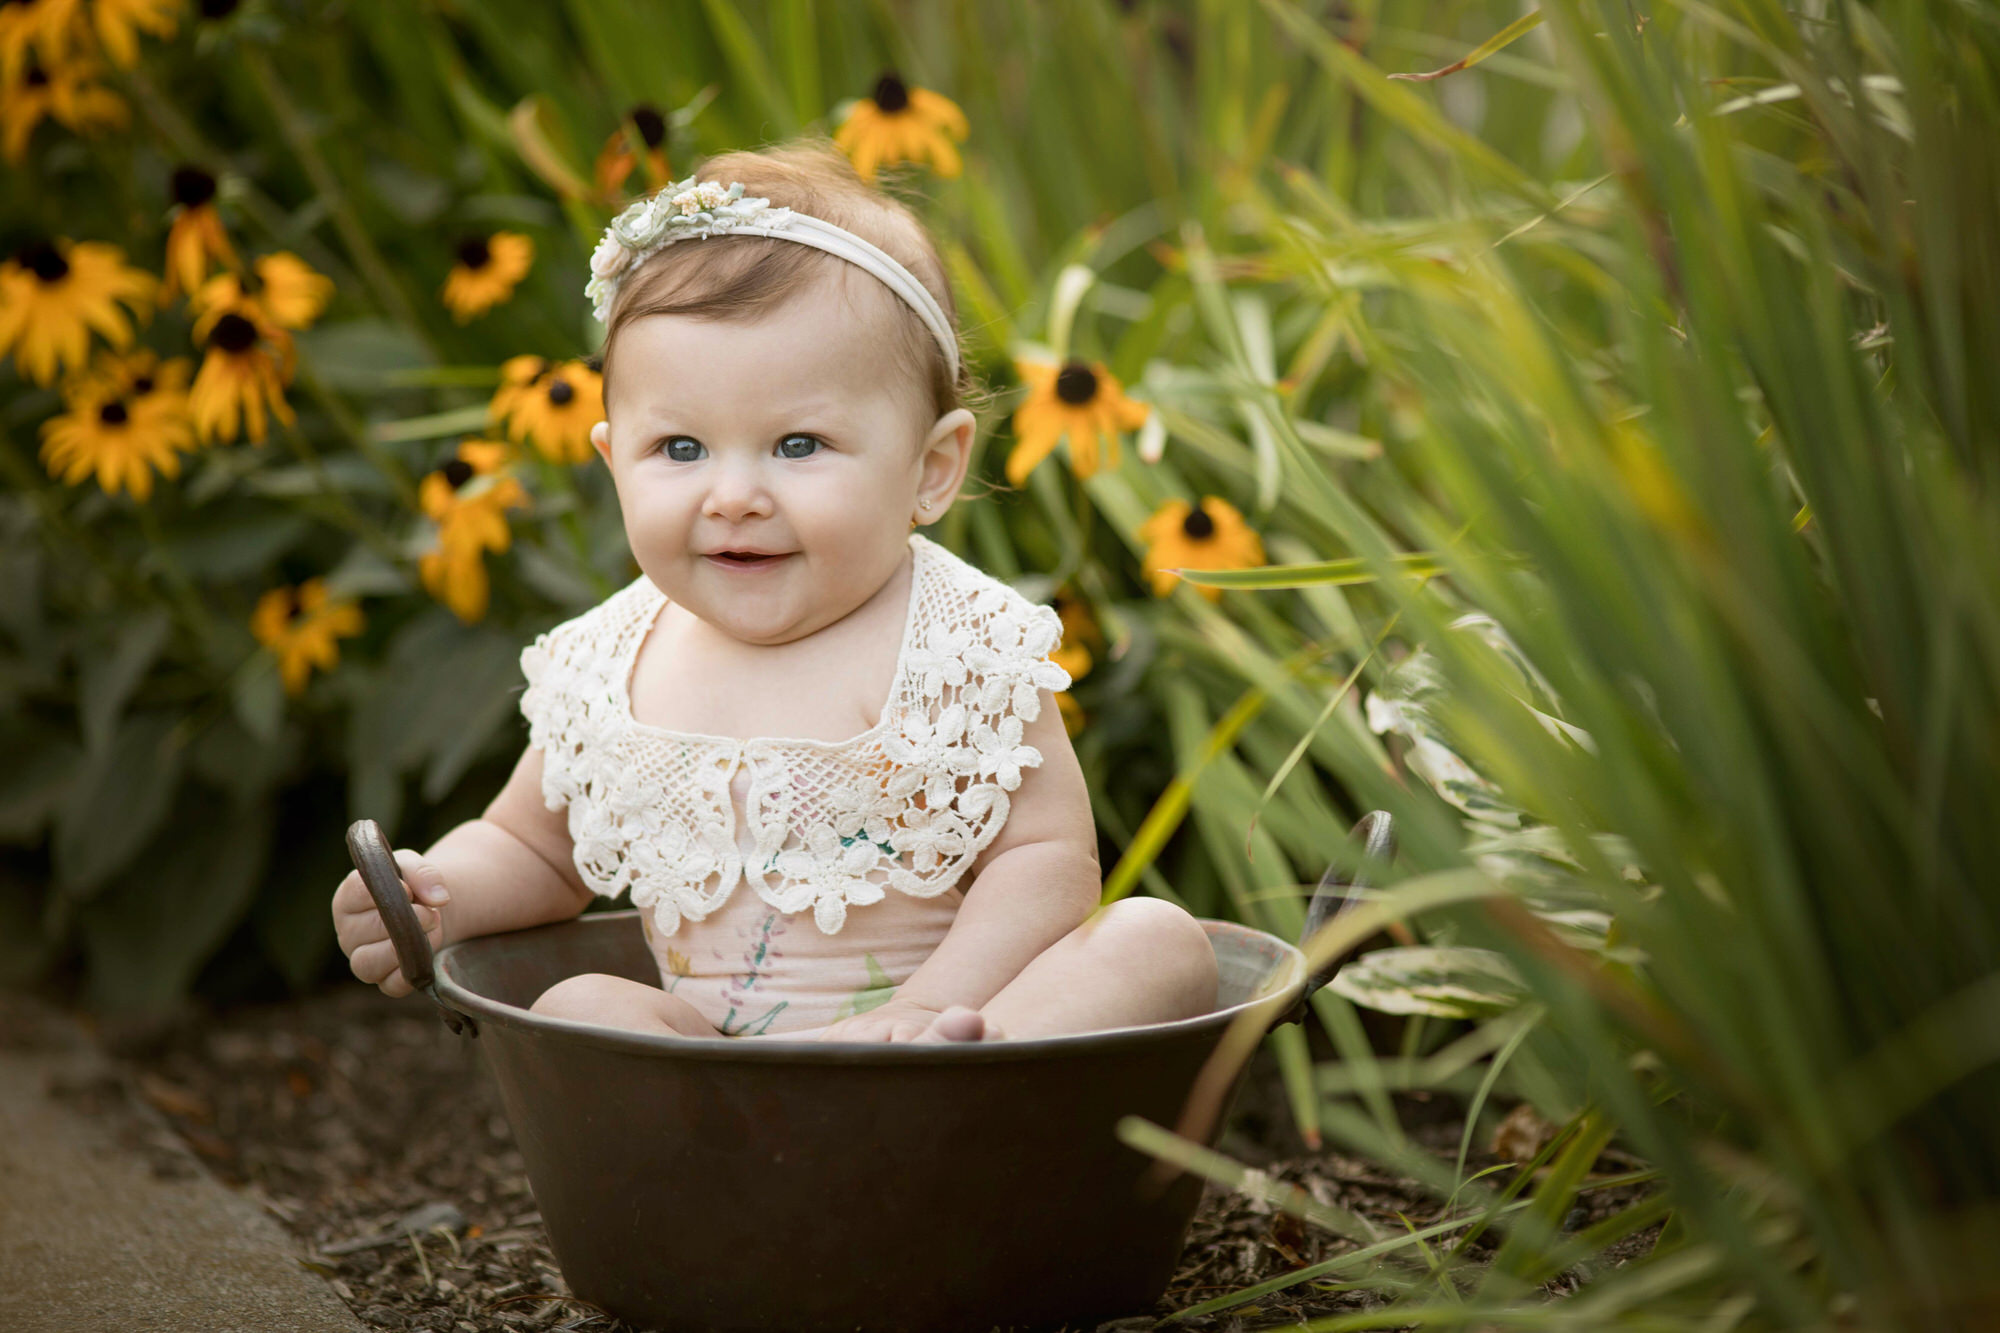 portrait photographed by Nicole Everson Photography of a baby girl in a flower patch